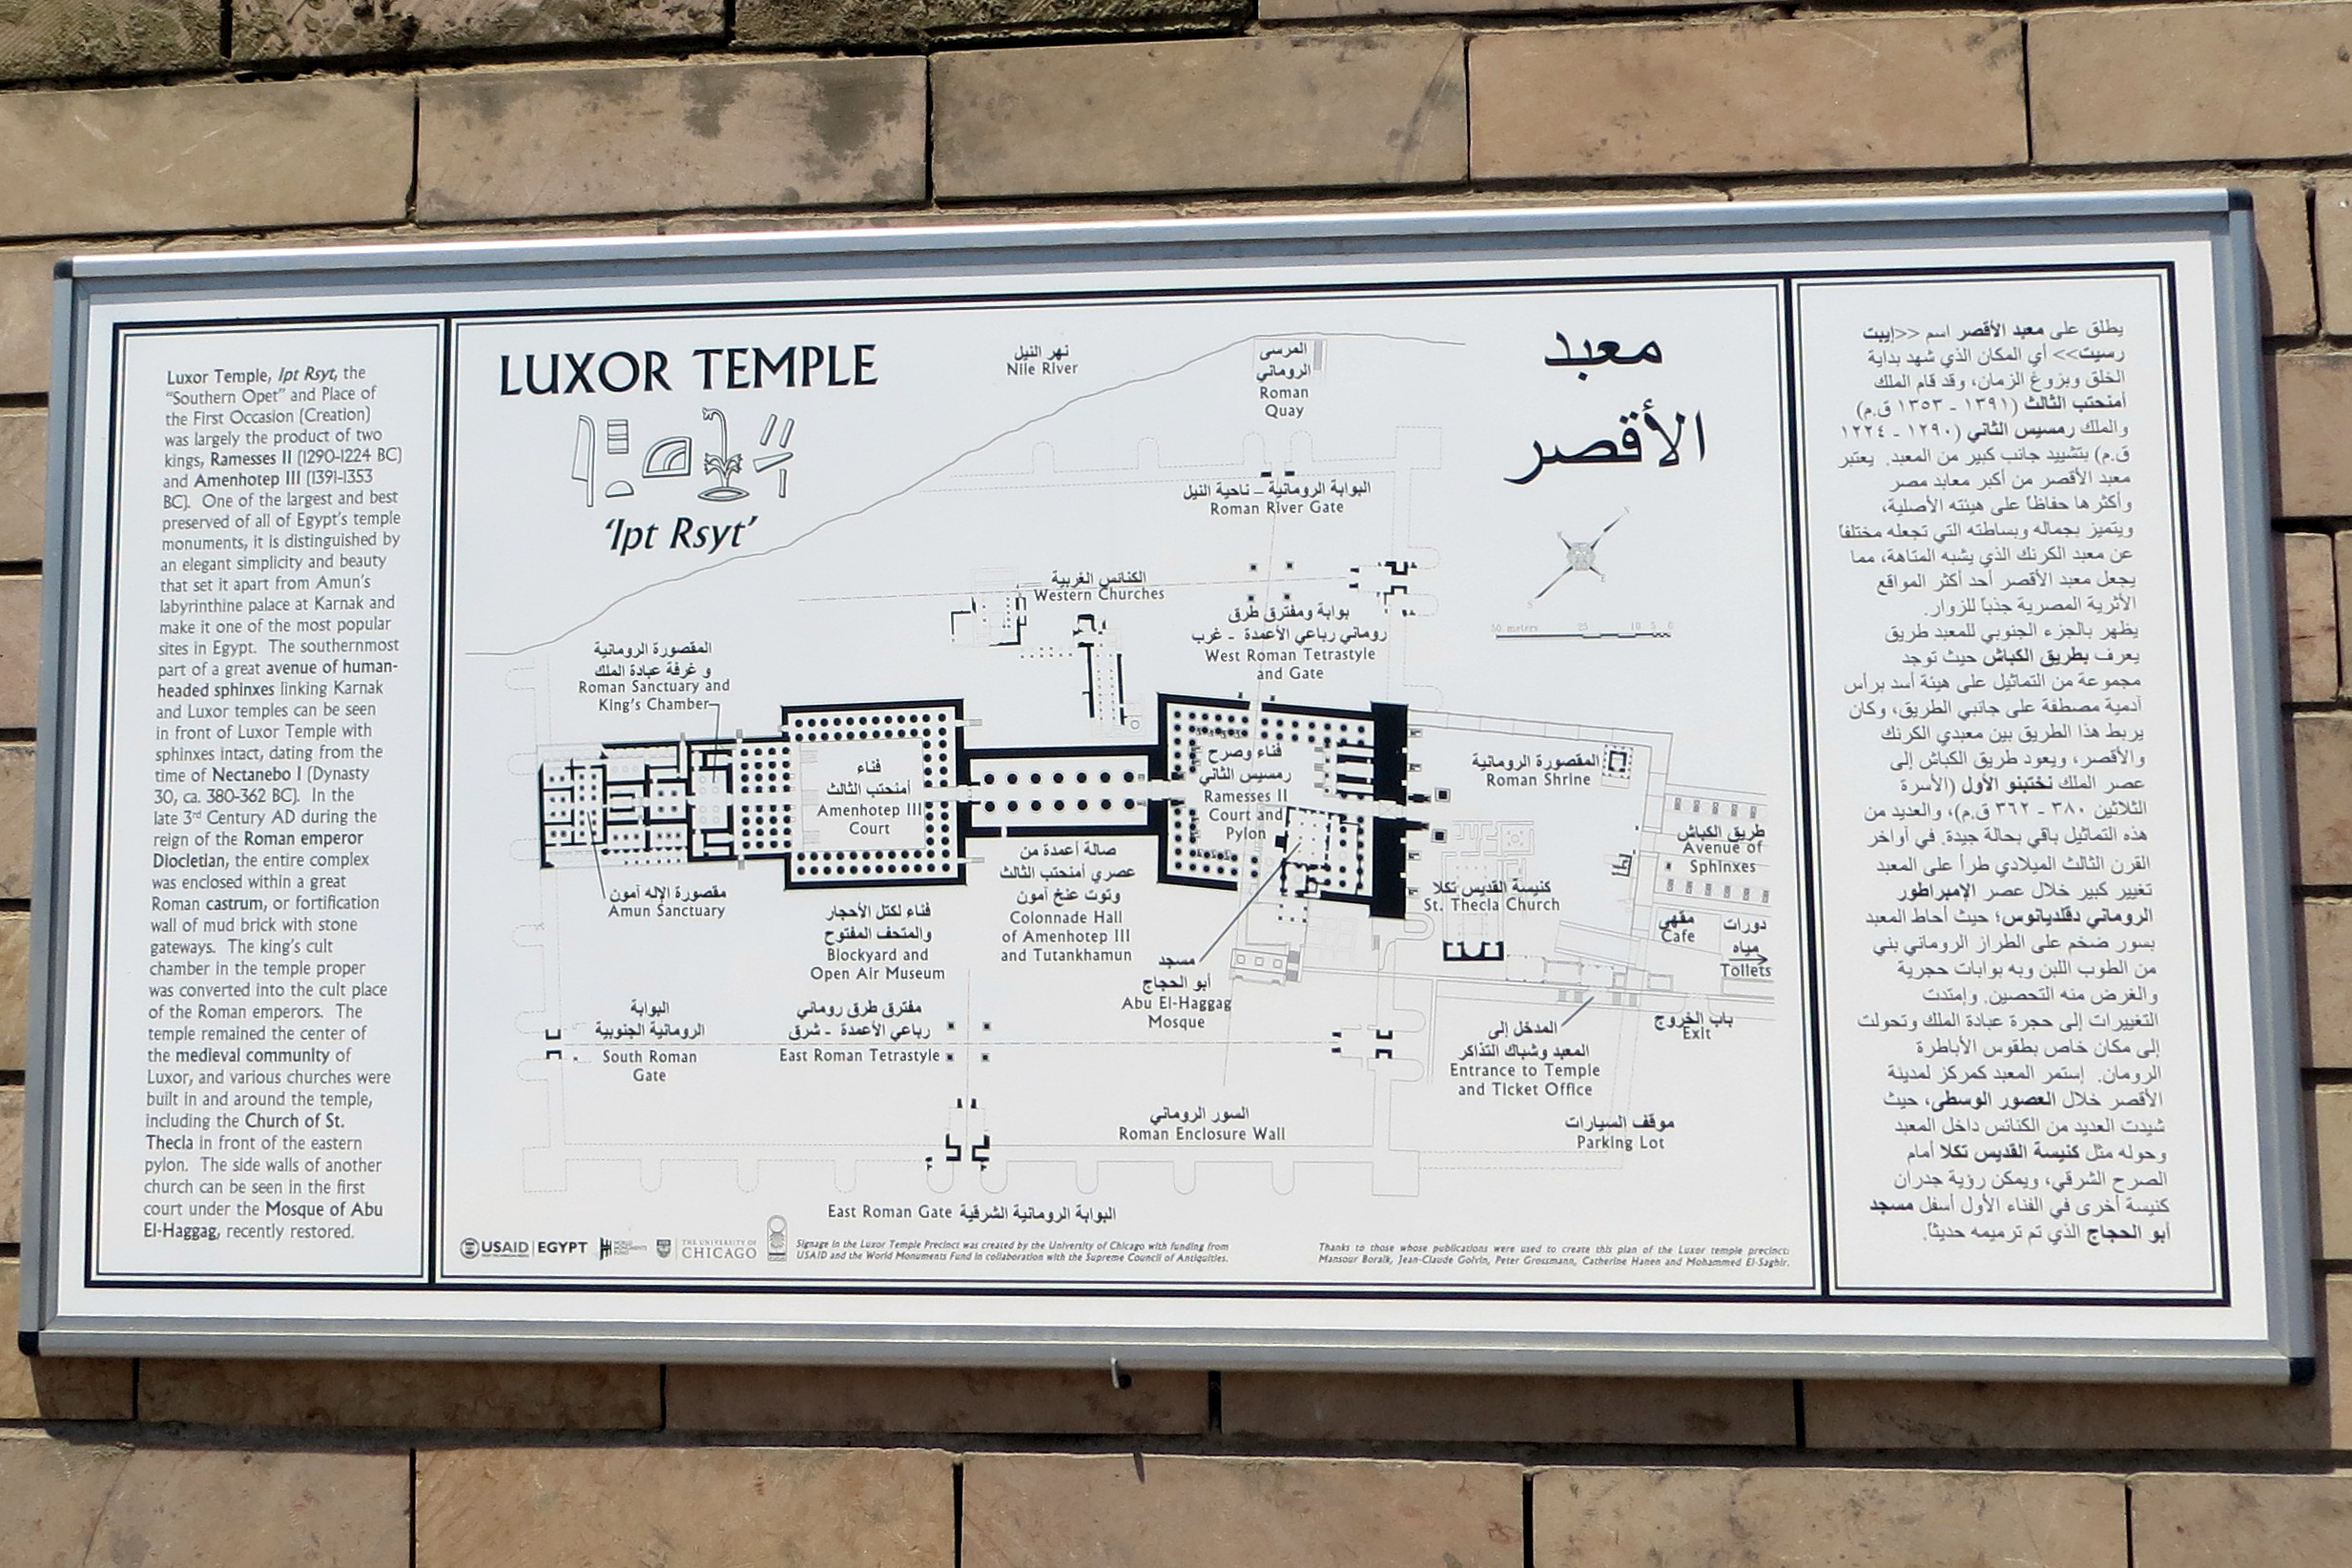 luxor buddhist dating site This unesco world heritage site is a veritable museum of classical chinese continue to the city wall dating to the early resembling a buddhist.